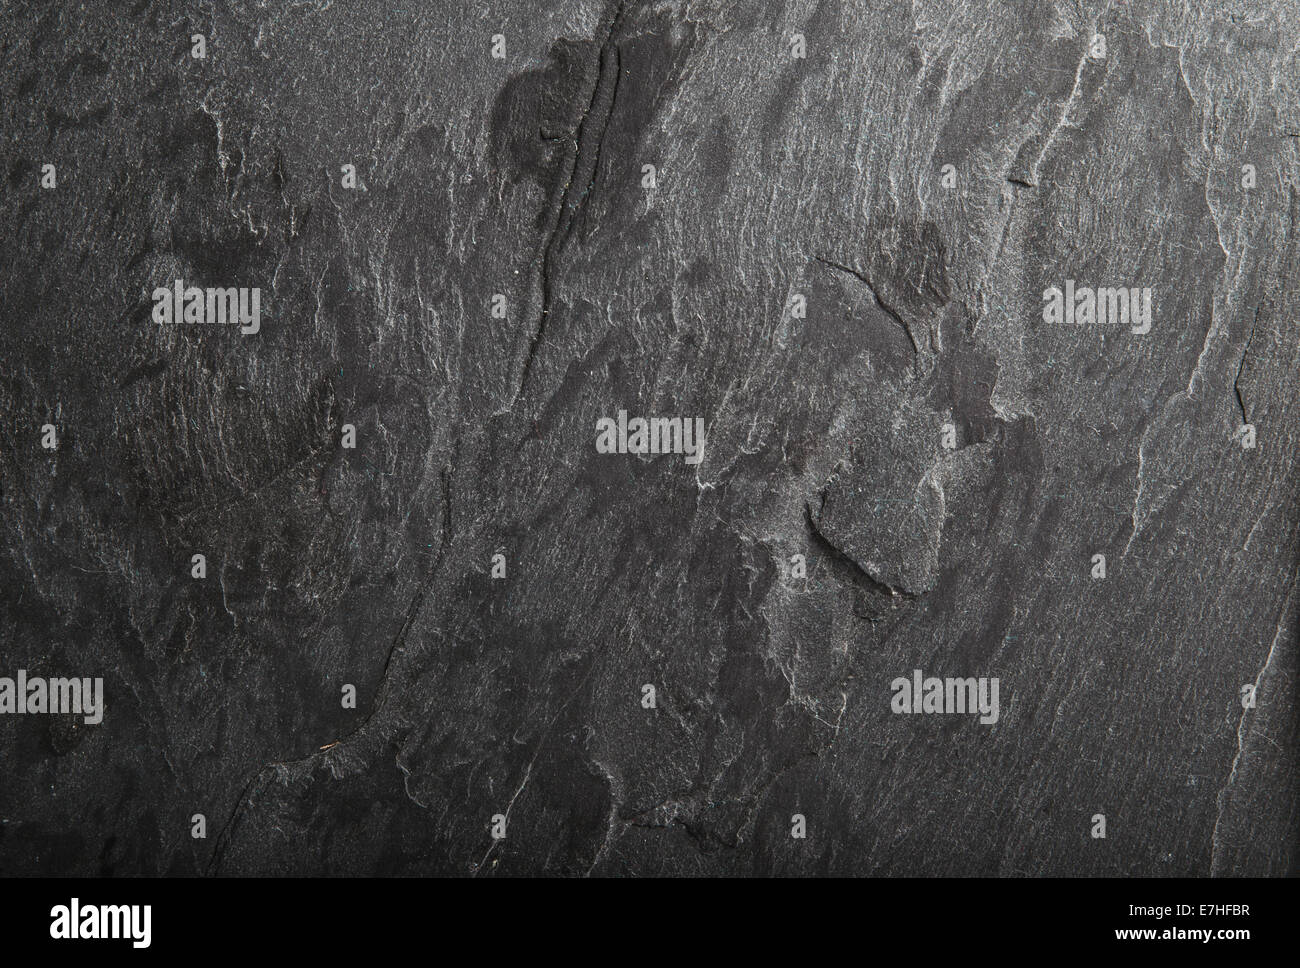 Abtract black slate rock material background texture - Stock Image